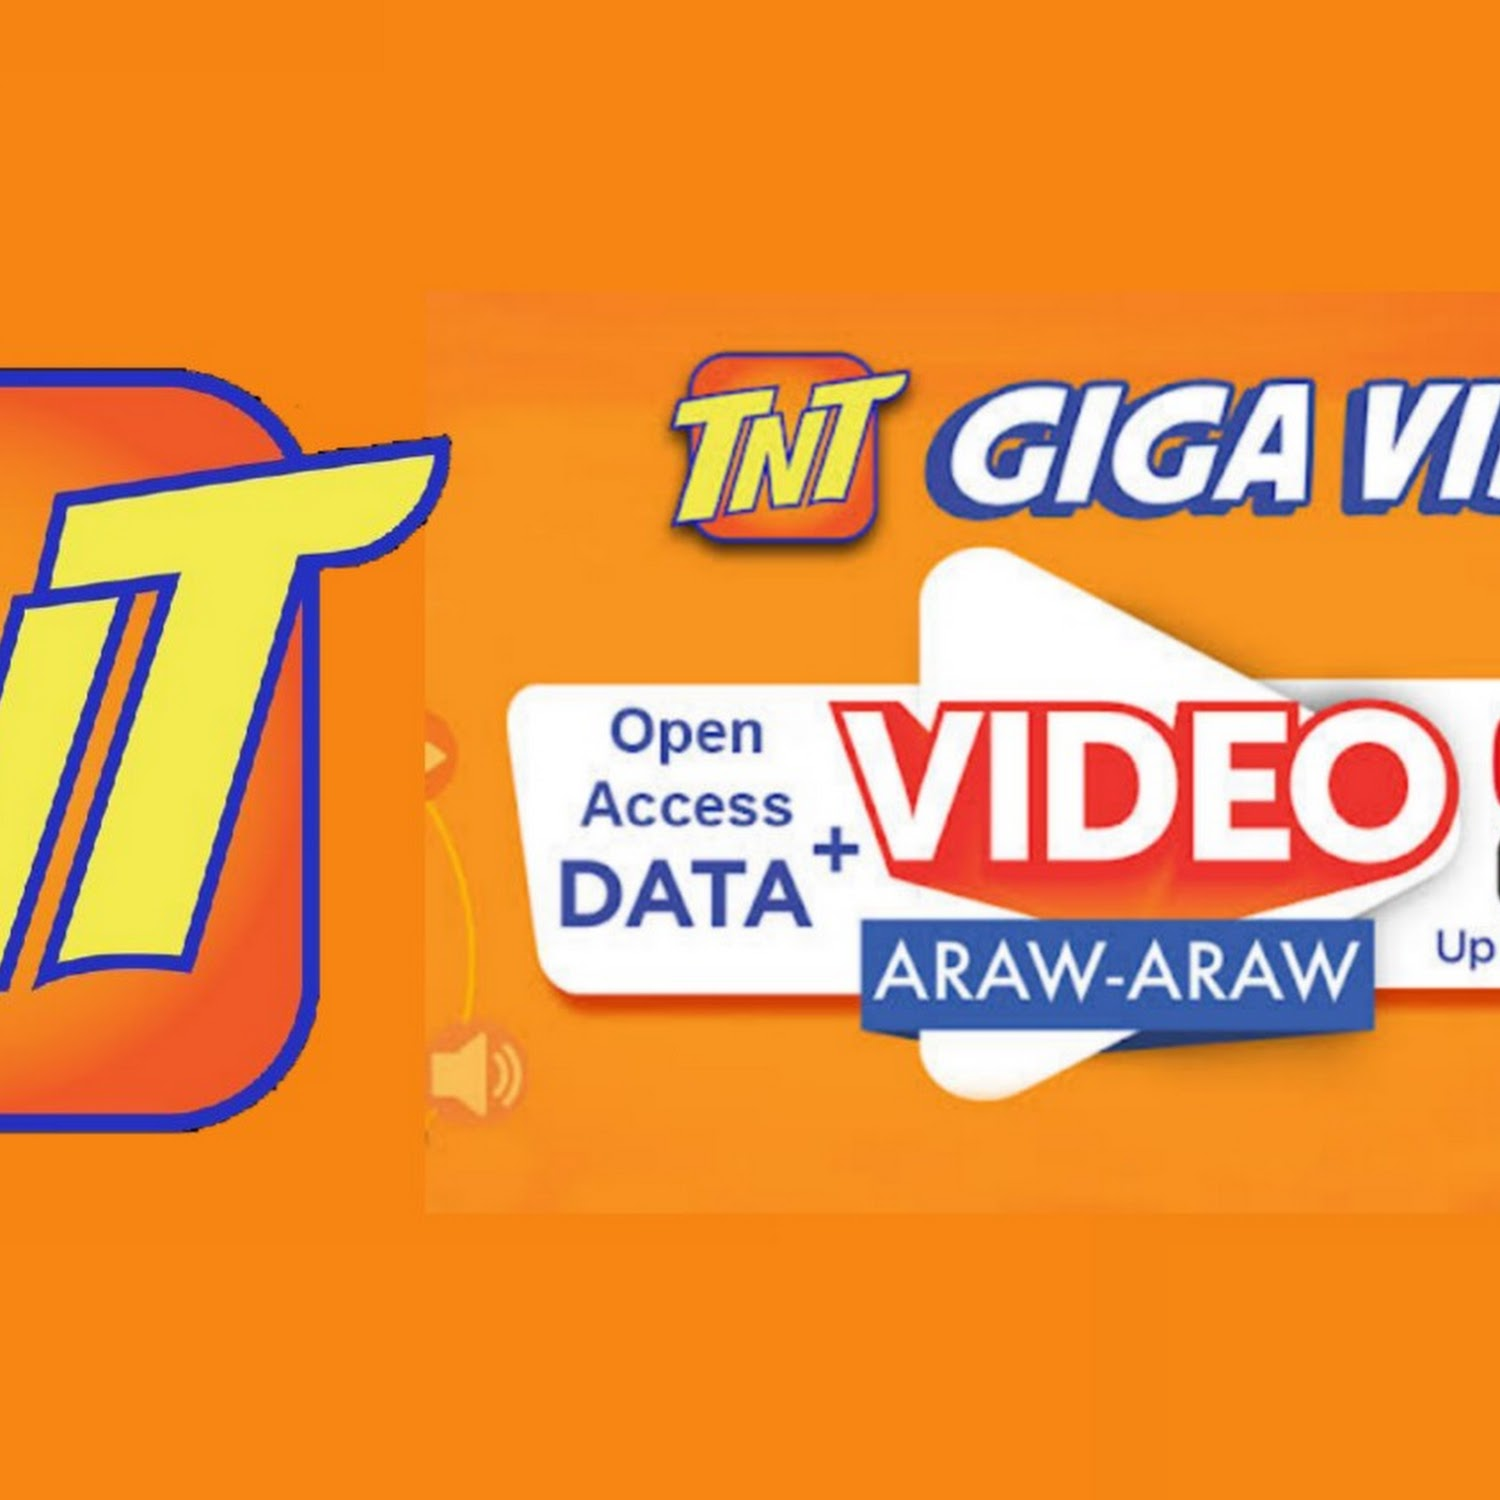 TNT GIGA Video Promos: Mobile Data + 1GB Video Everyday